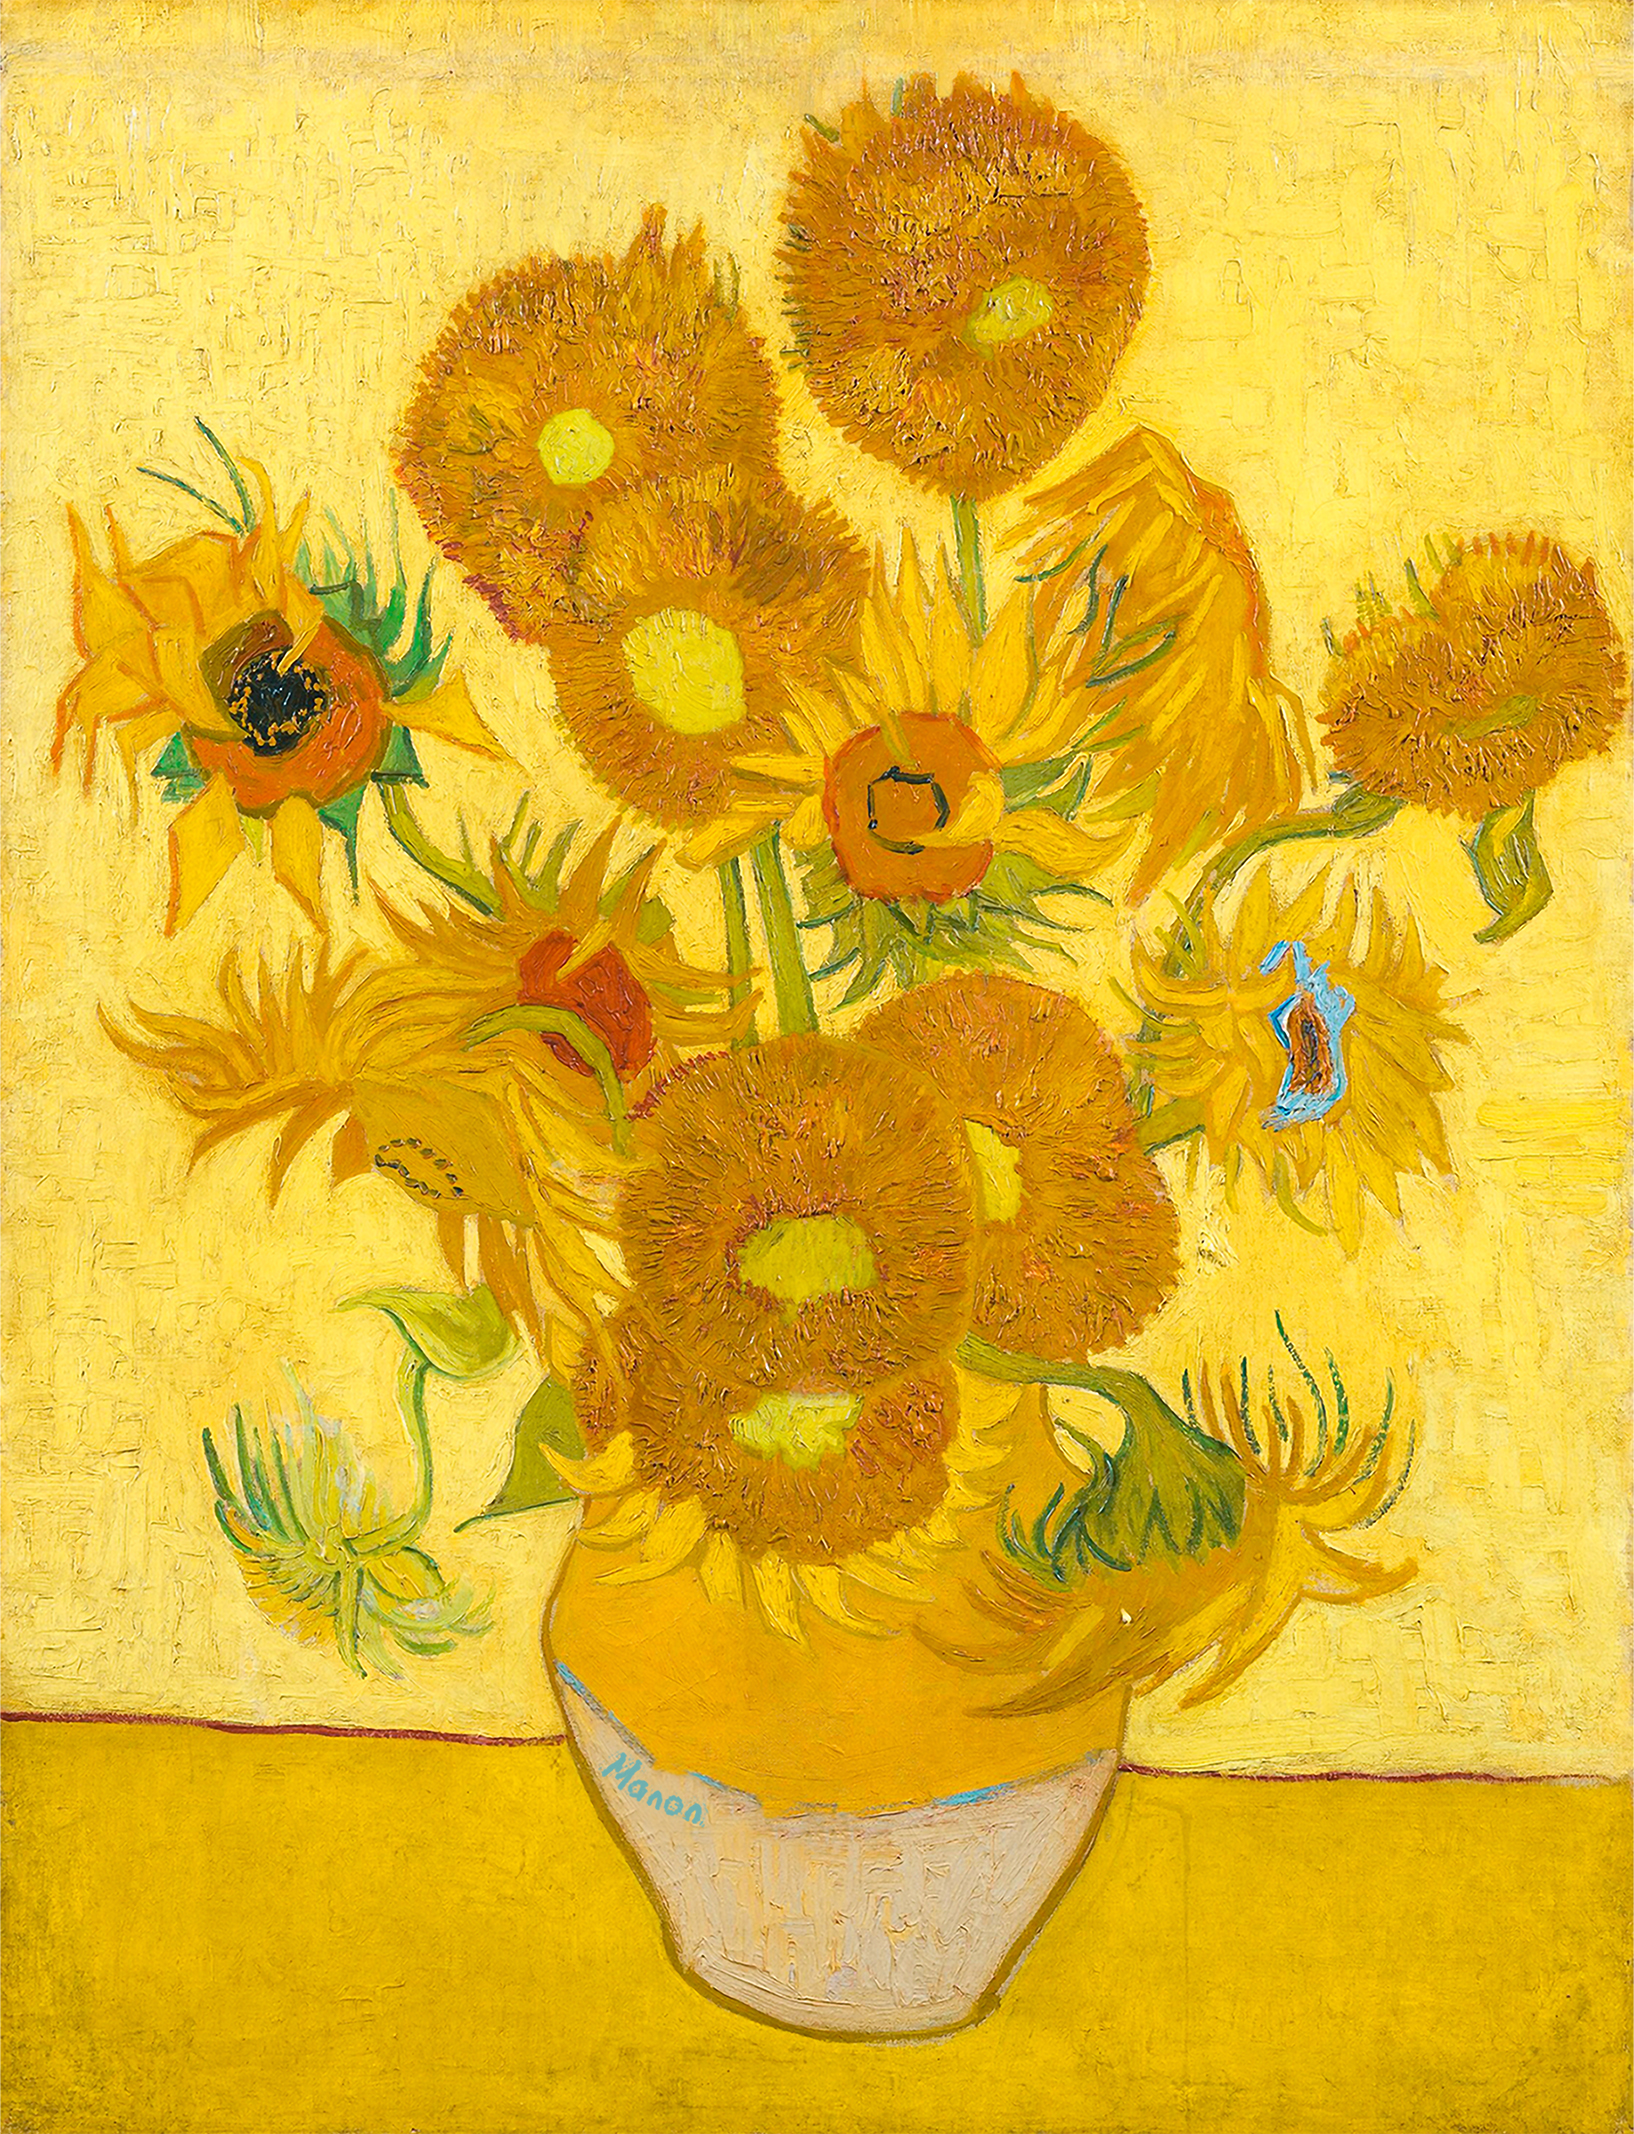 a repainting of van Gogh's sunflowers